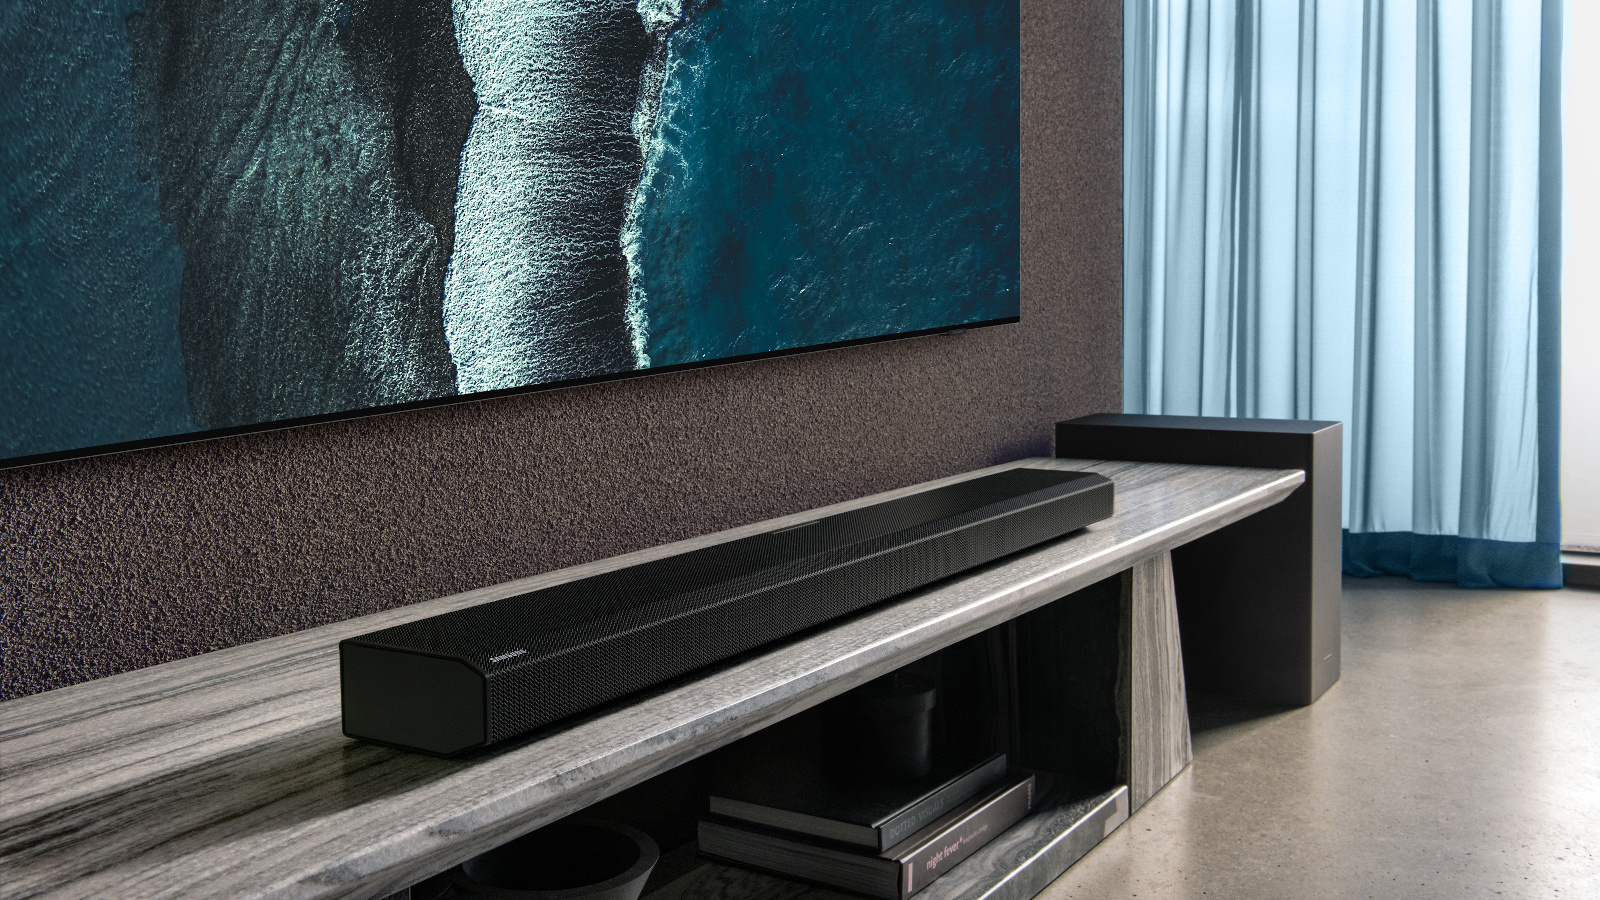 Samsung 2021 Q Series soundbars include the HW-Q950A and HW-Q800A